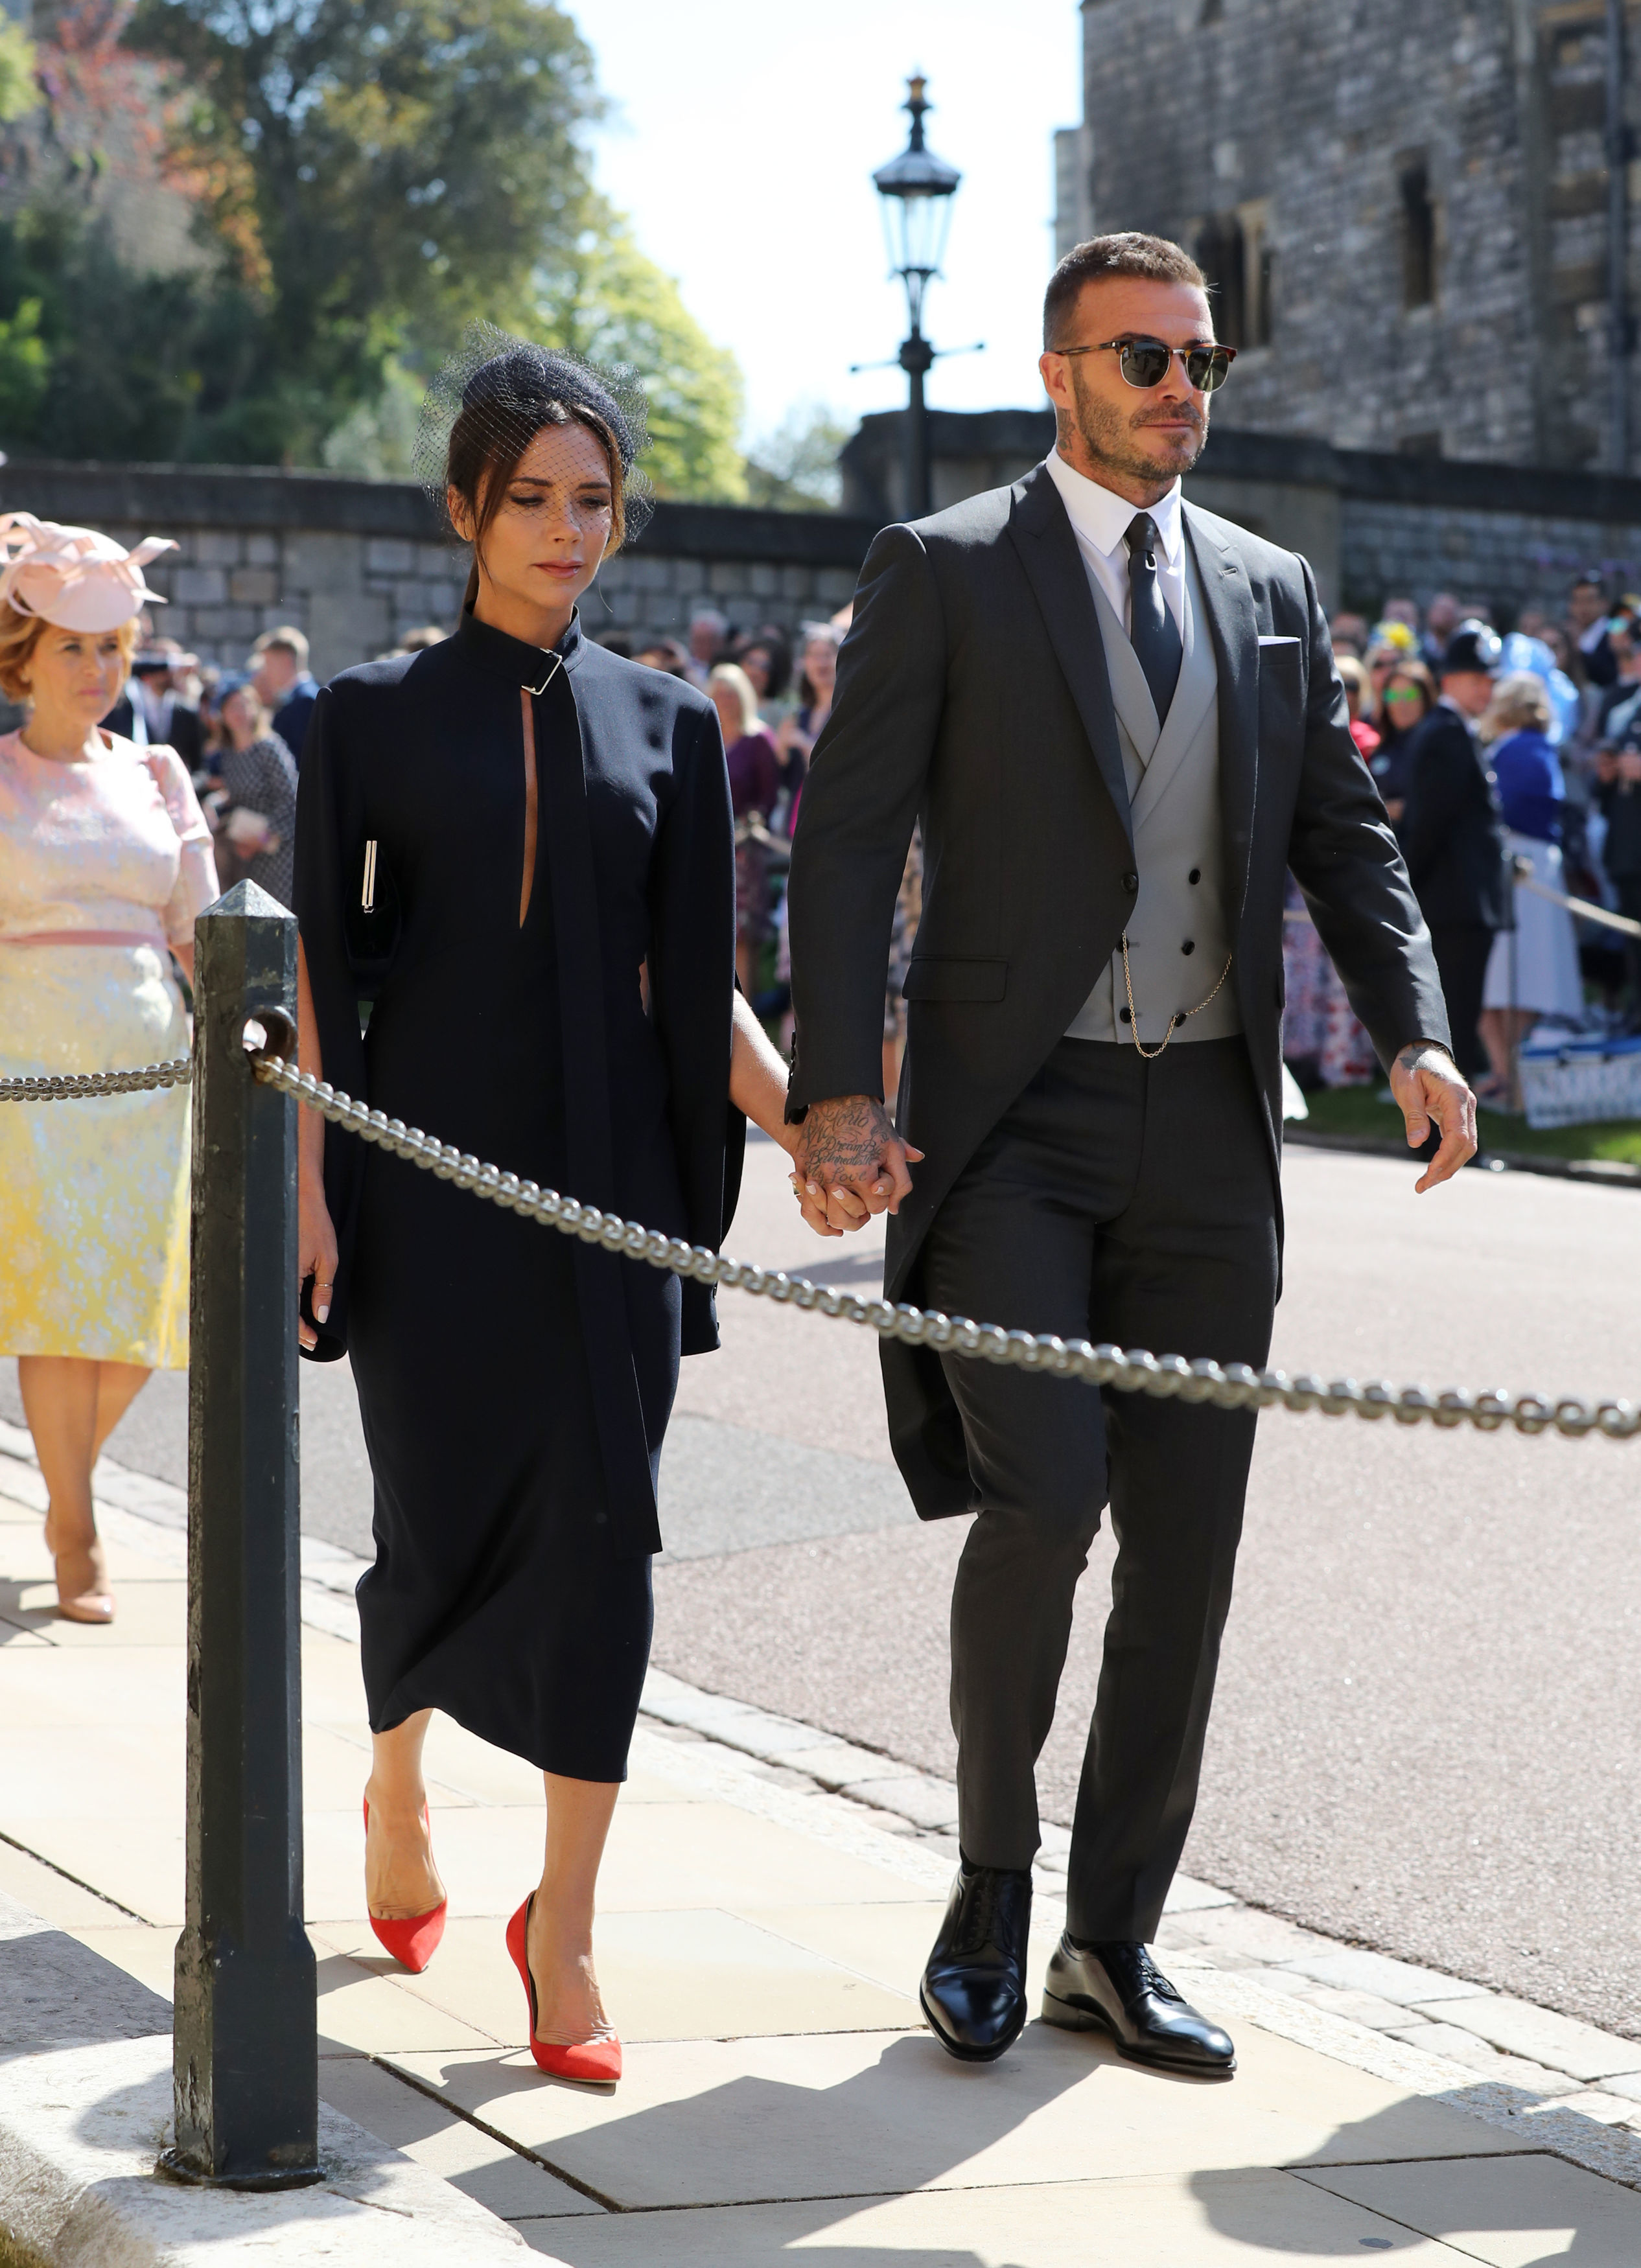 d25a2f3ede8d8 Former England footballer David Beckham (R) arrives with his wife Victoria  for the wedding ceremony of Britain s Prince Harry